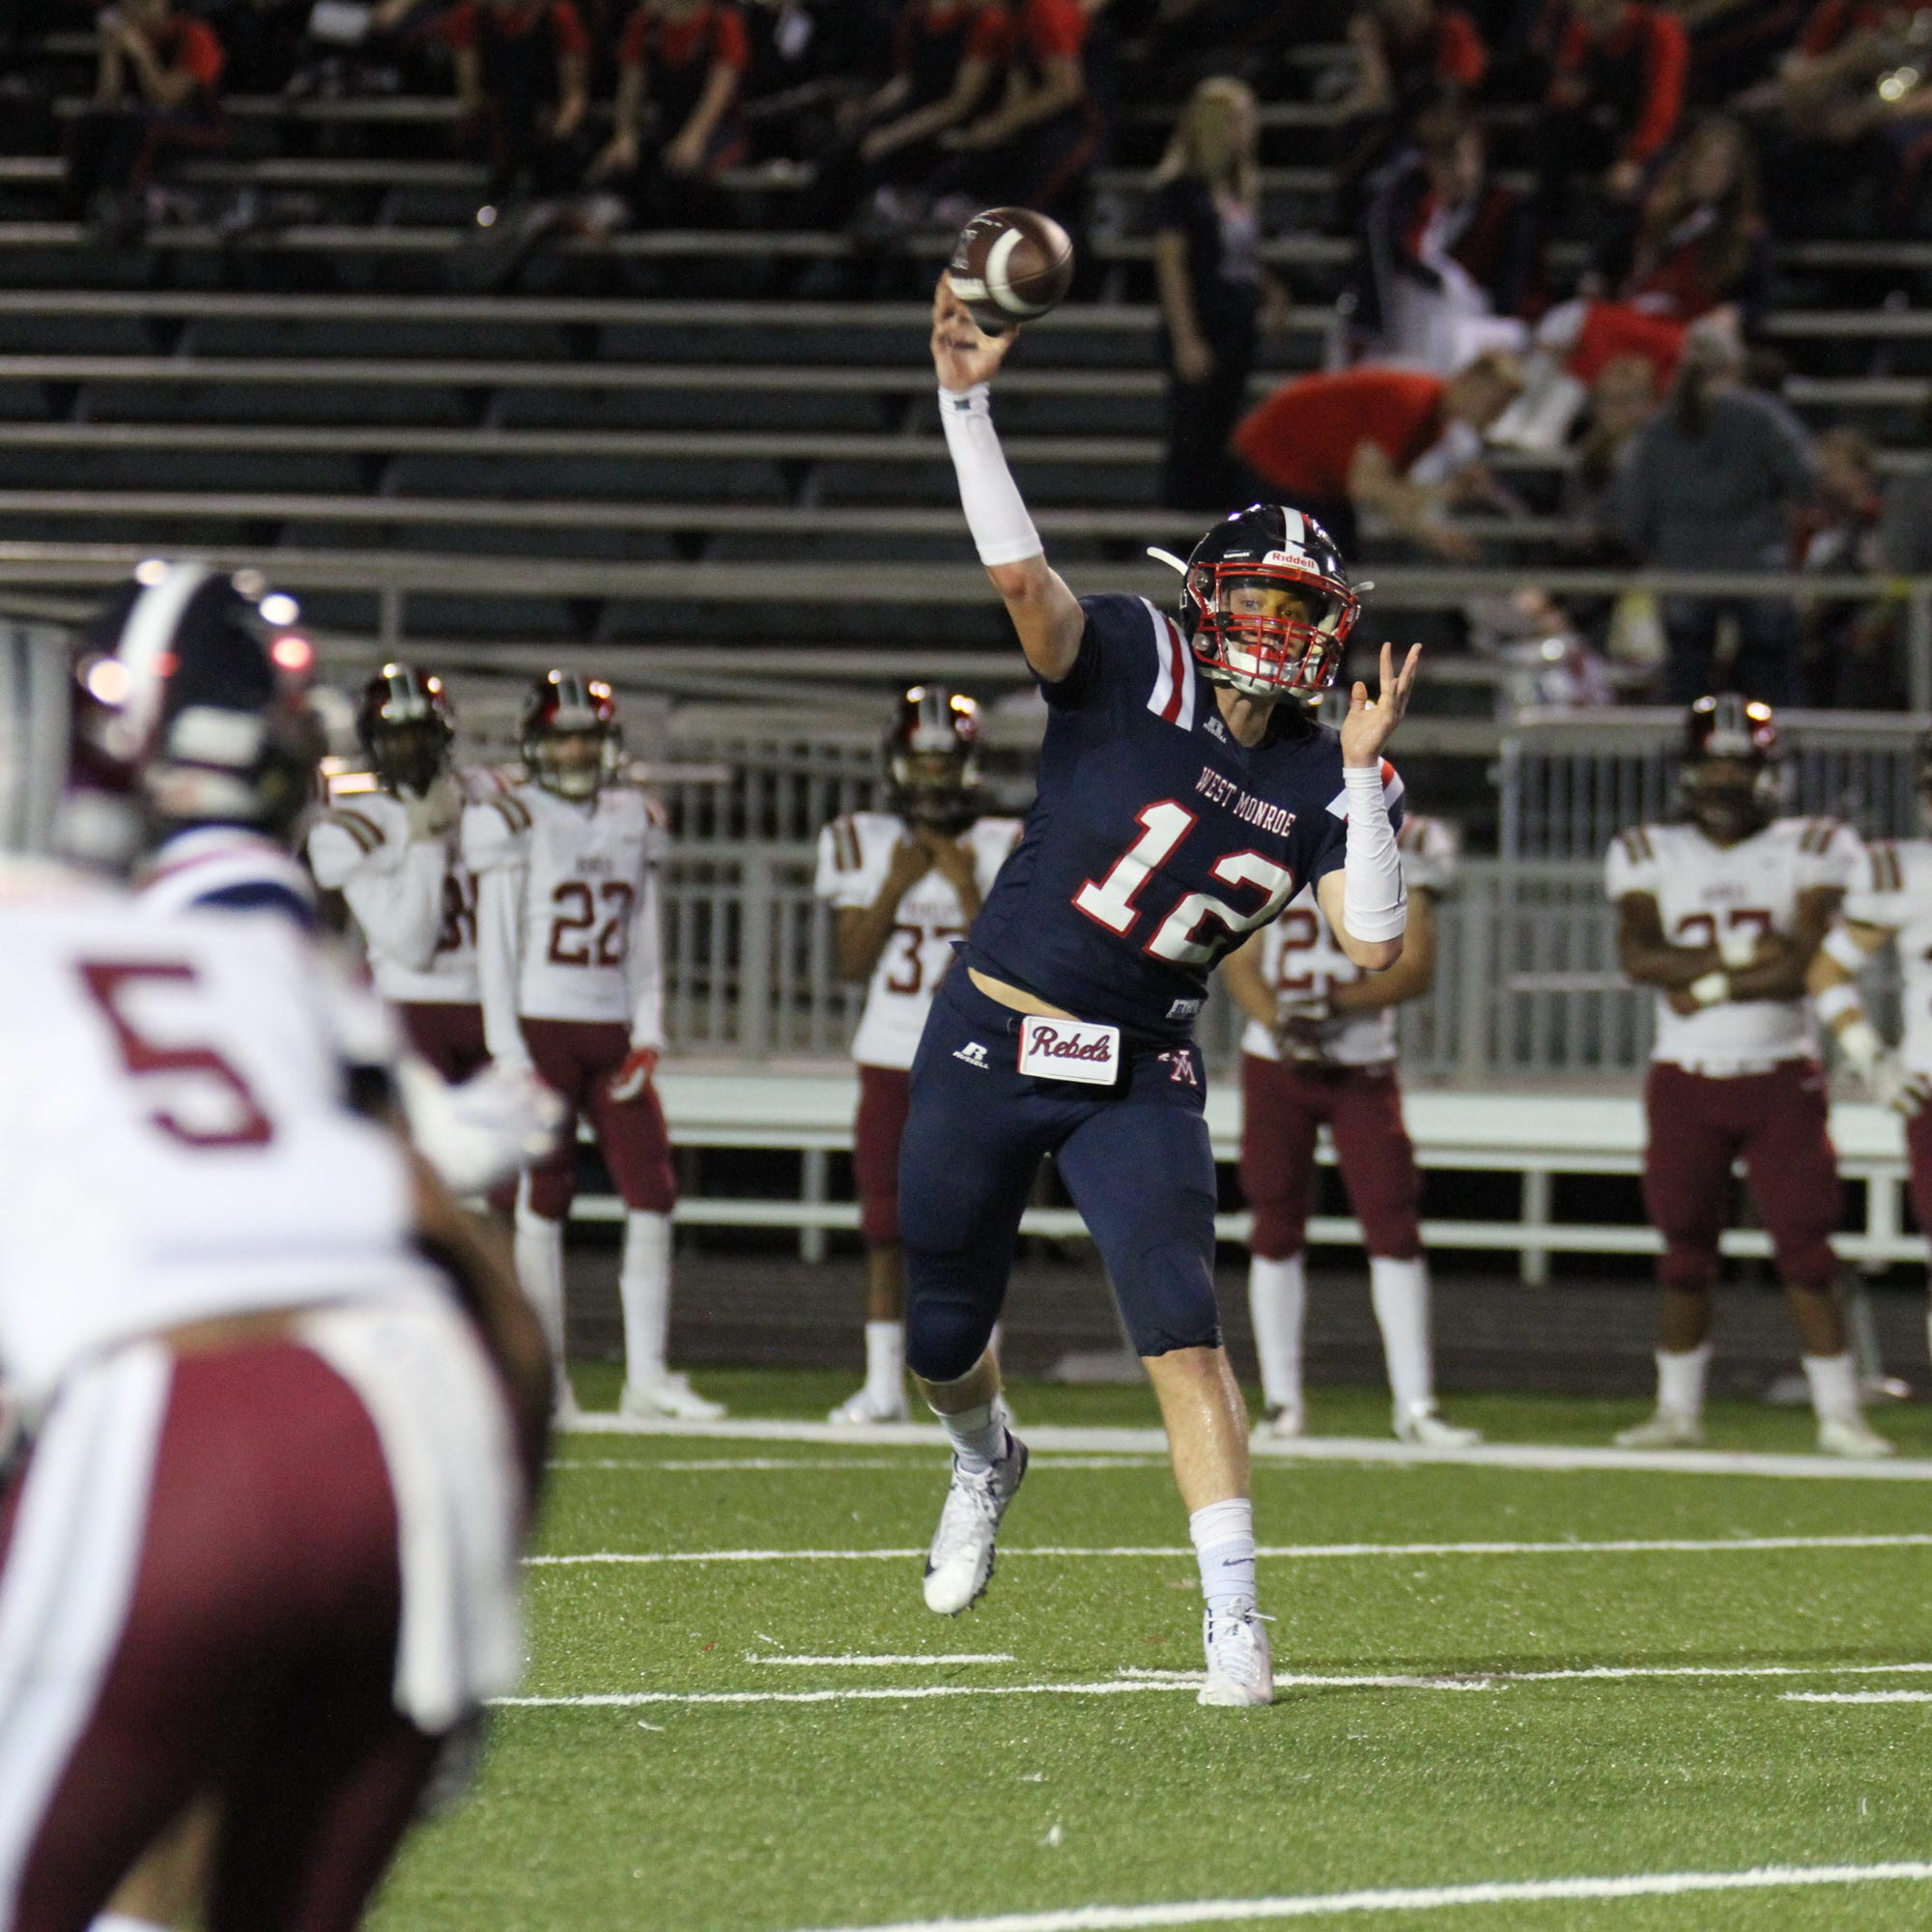 West Monroe shreds Pineville for season-high in points in homecoming blowout